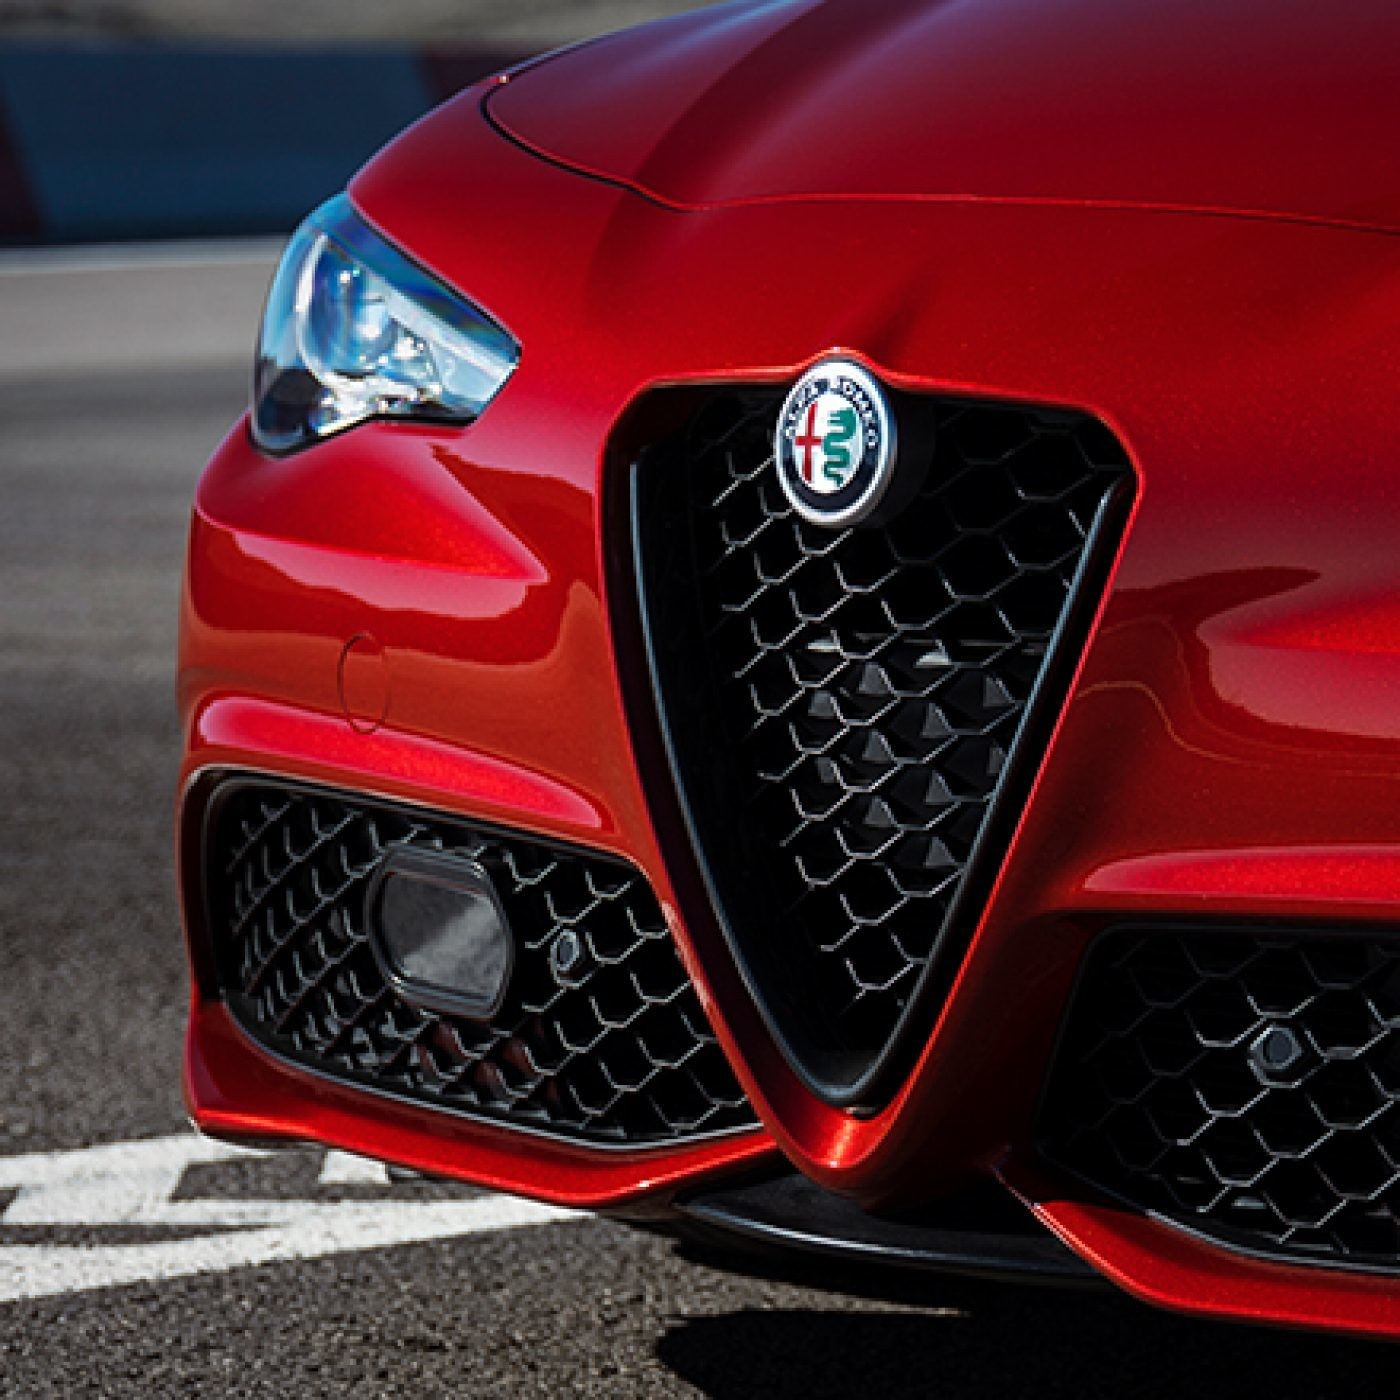 Front view of the red 2019 Alfa Romeo Giulia showing its Bi-Xenon headlights and the Scudetto grille